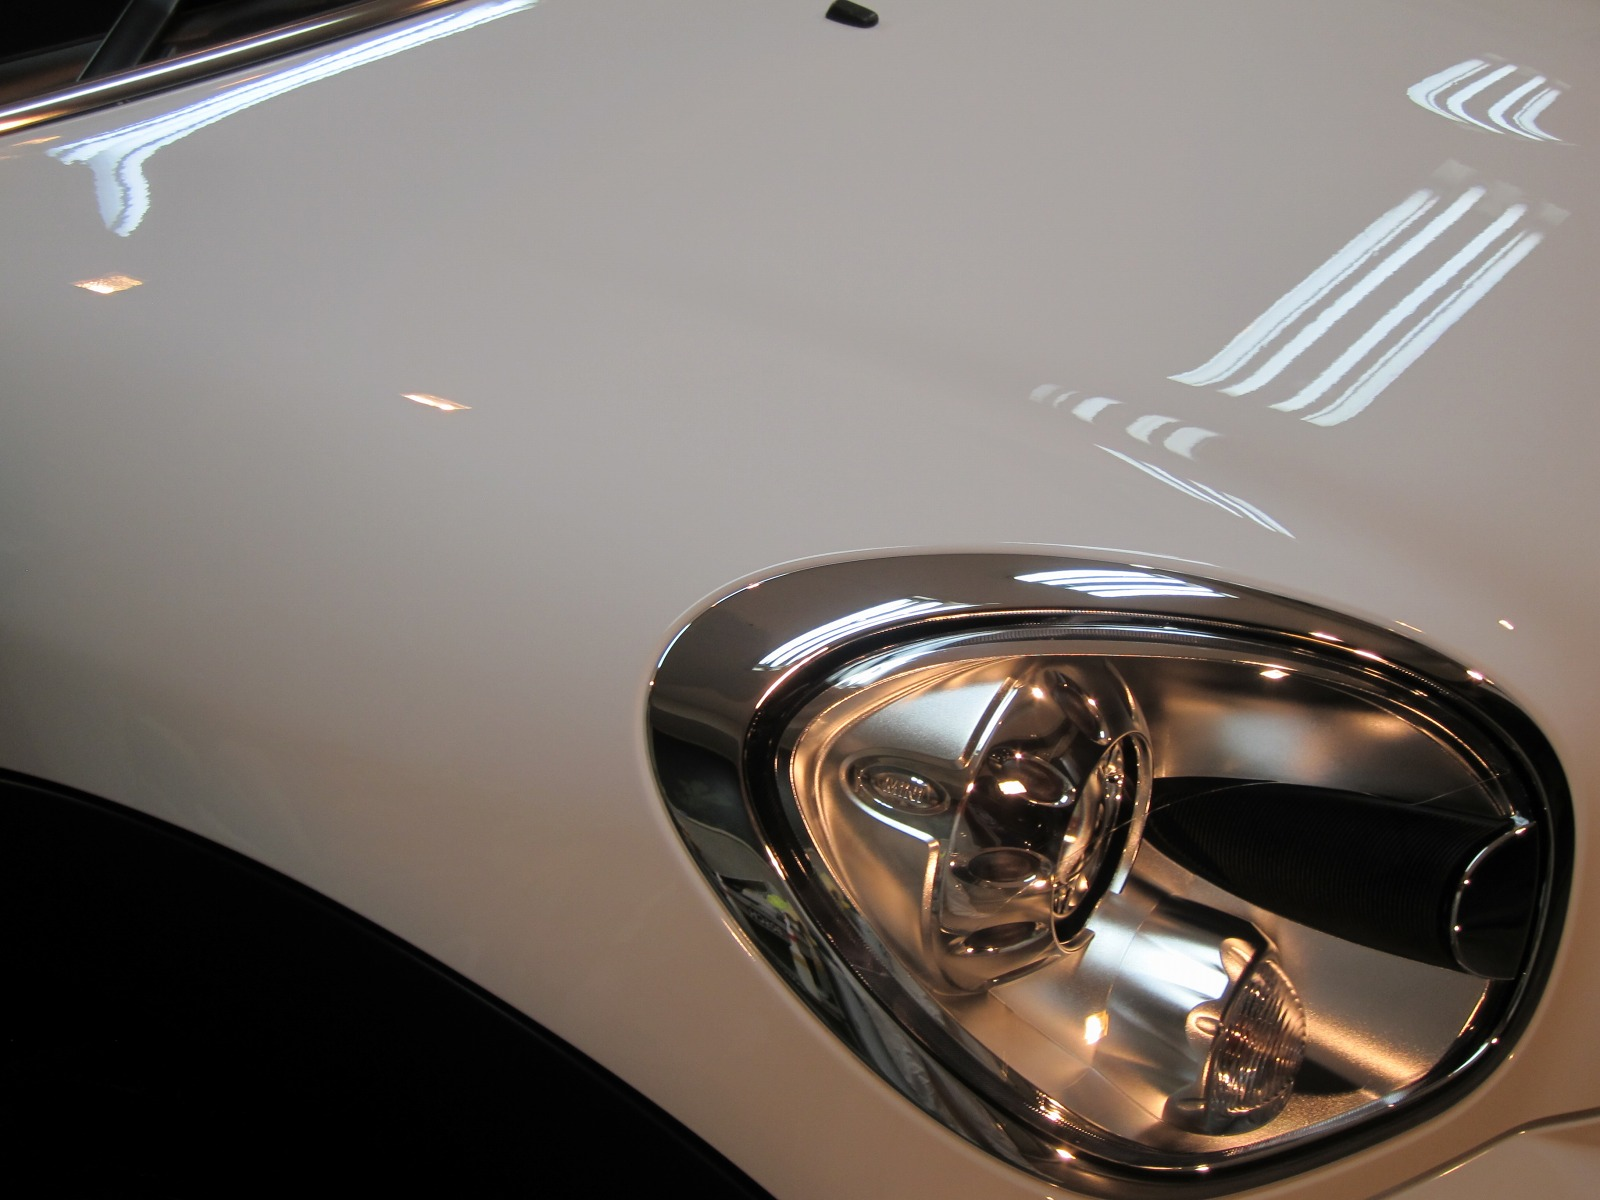 20131002-mini-coopers-crossover-13